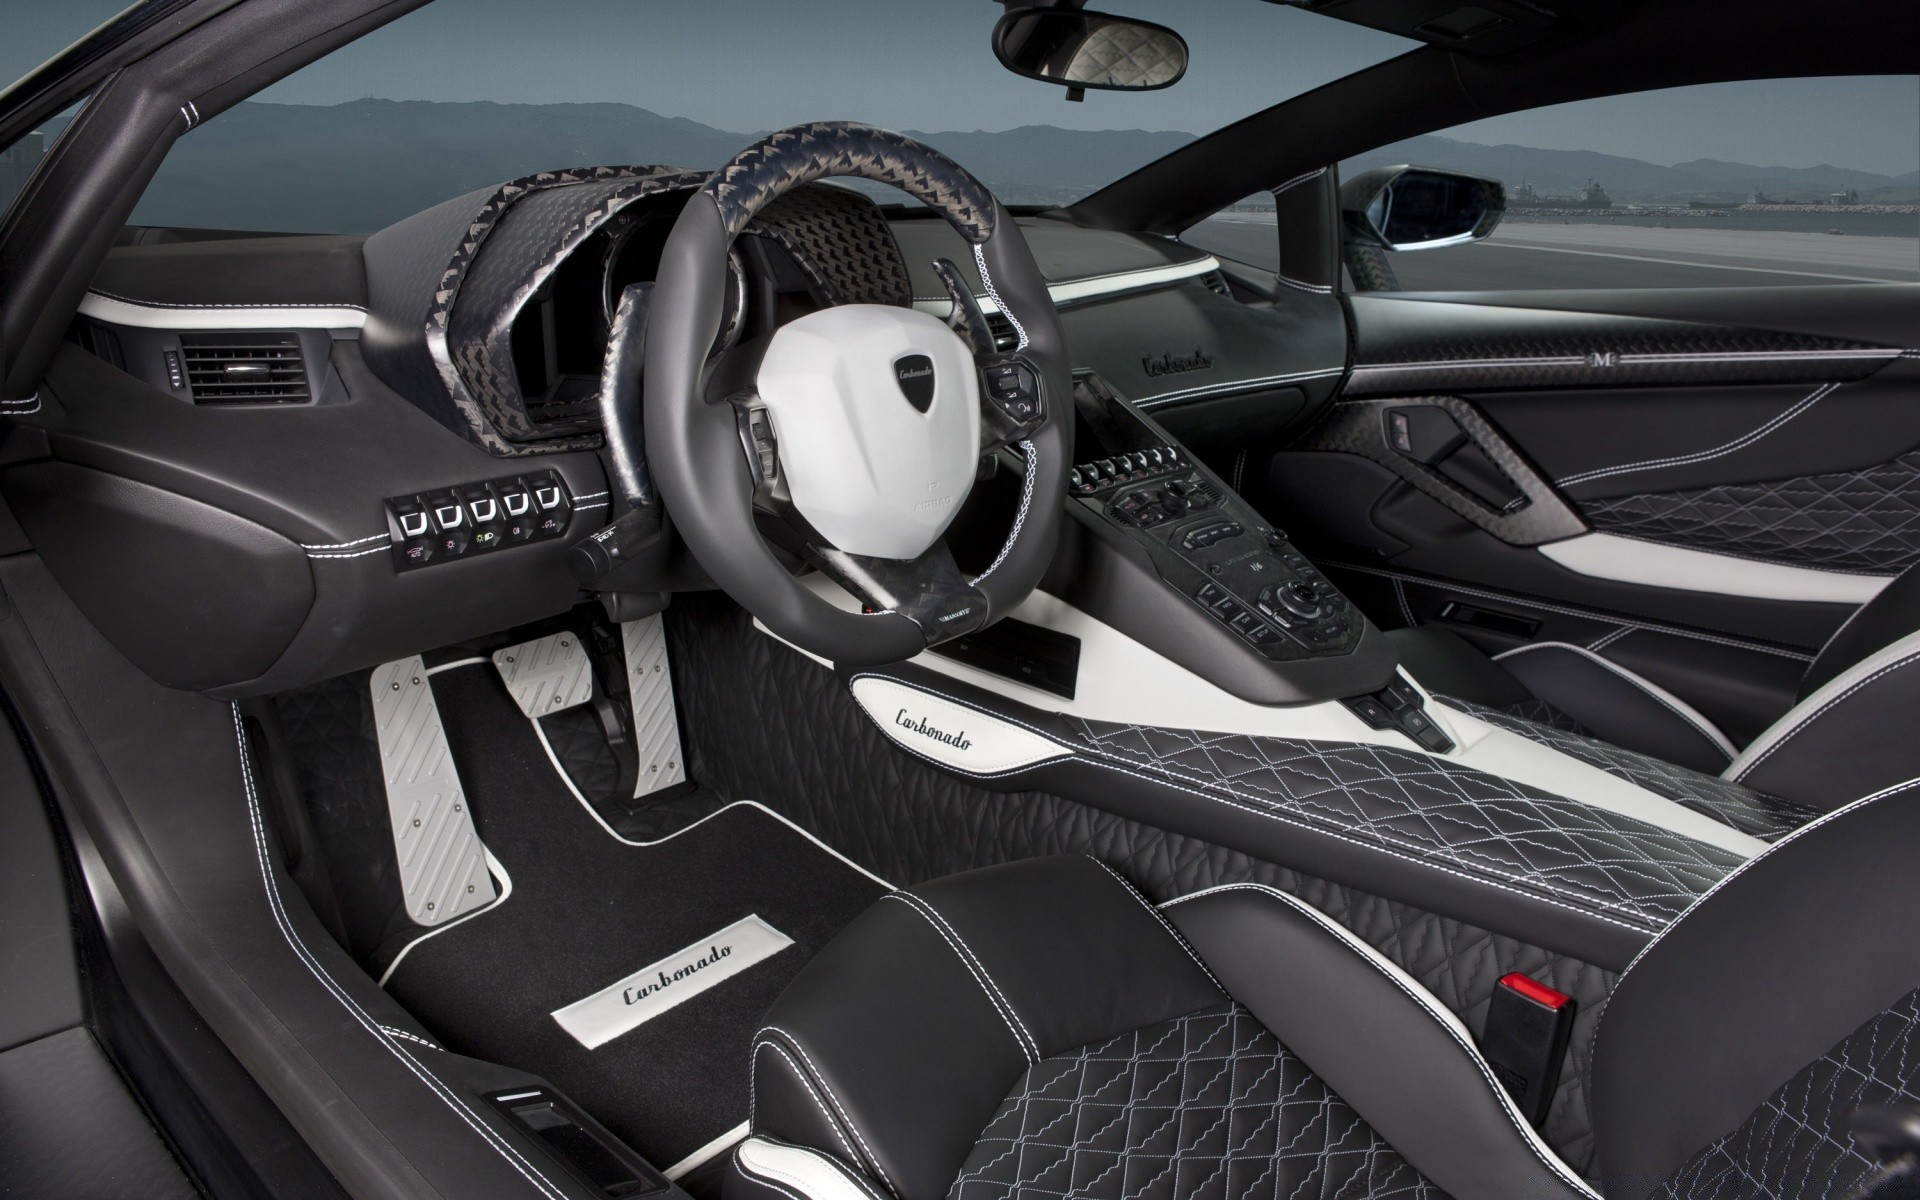 Lamborghini Aventador Lp700 4 Car Interior Phone Wallpapers